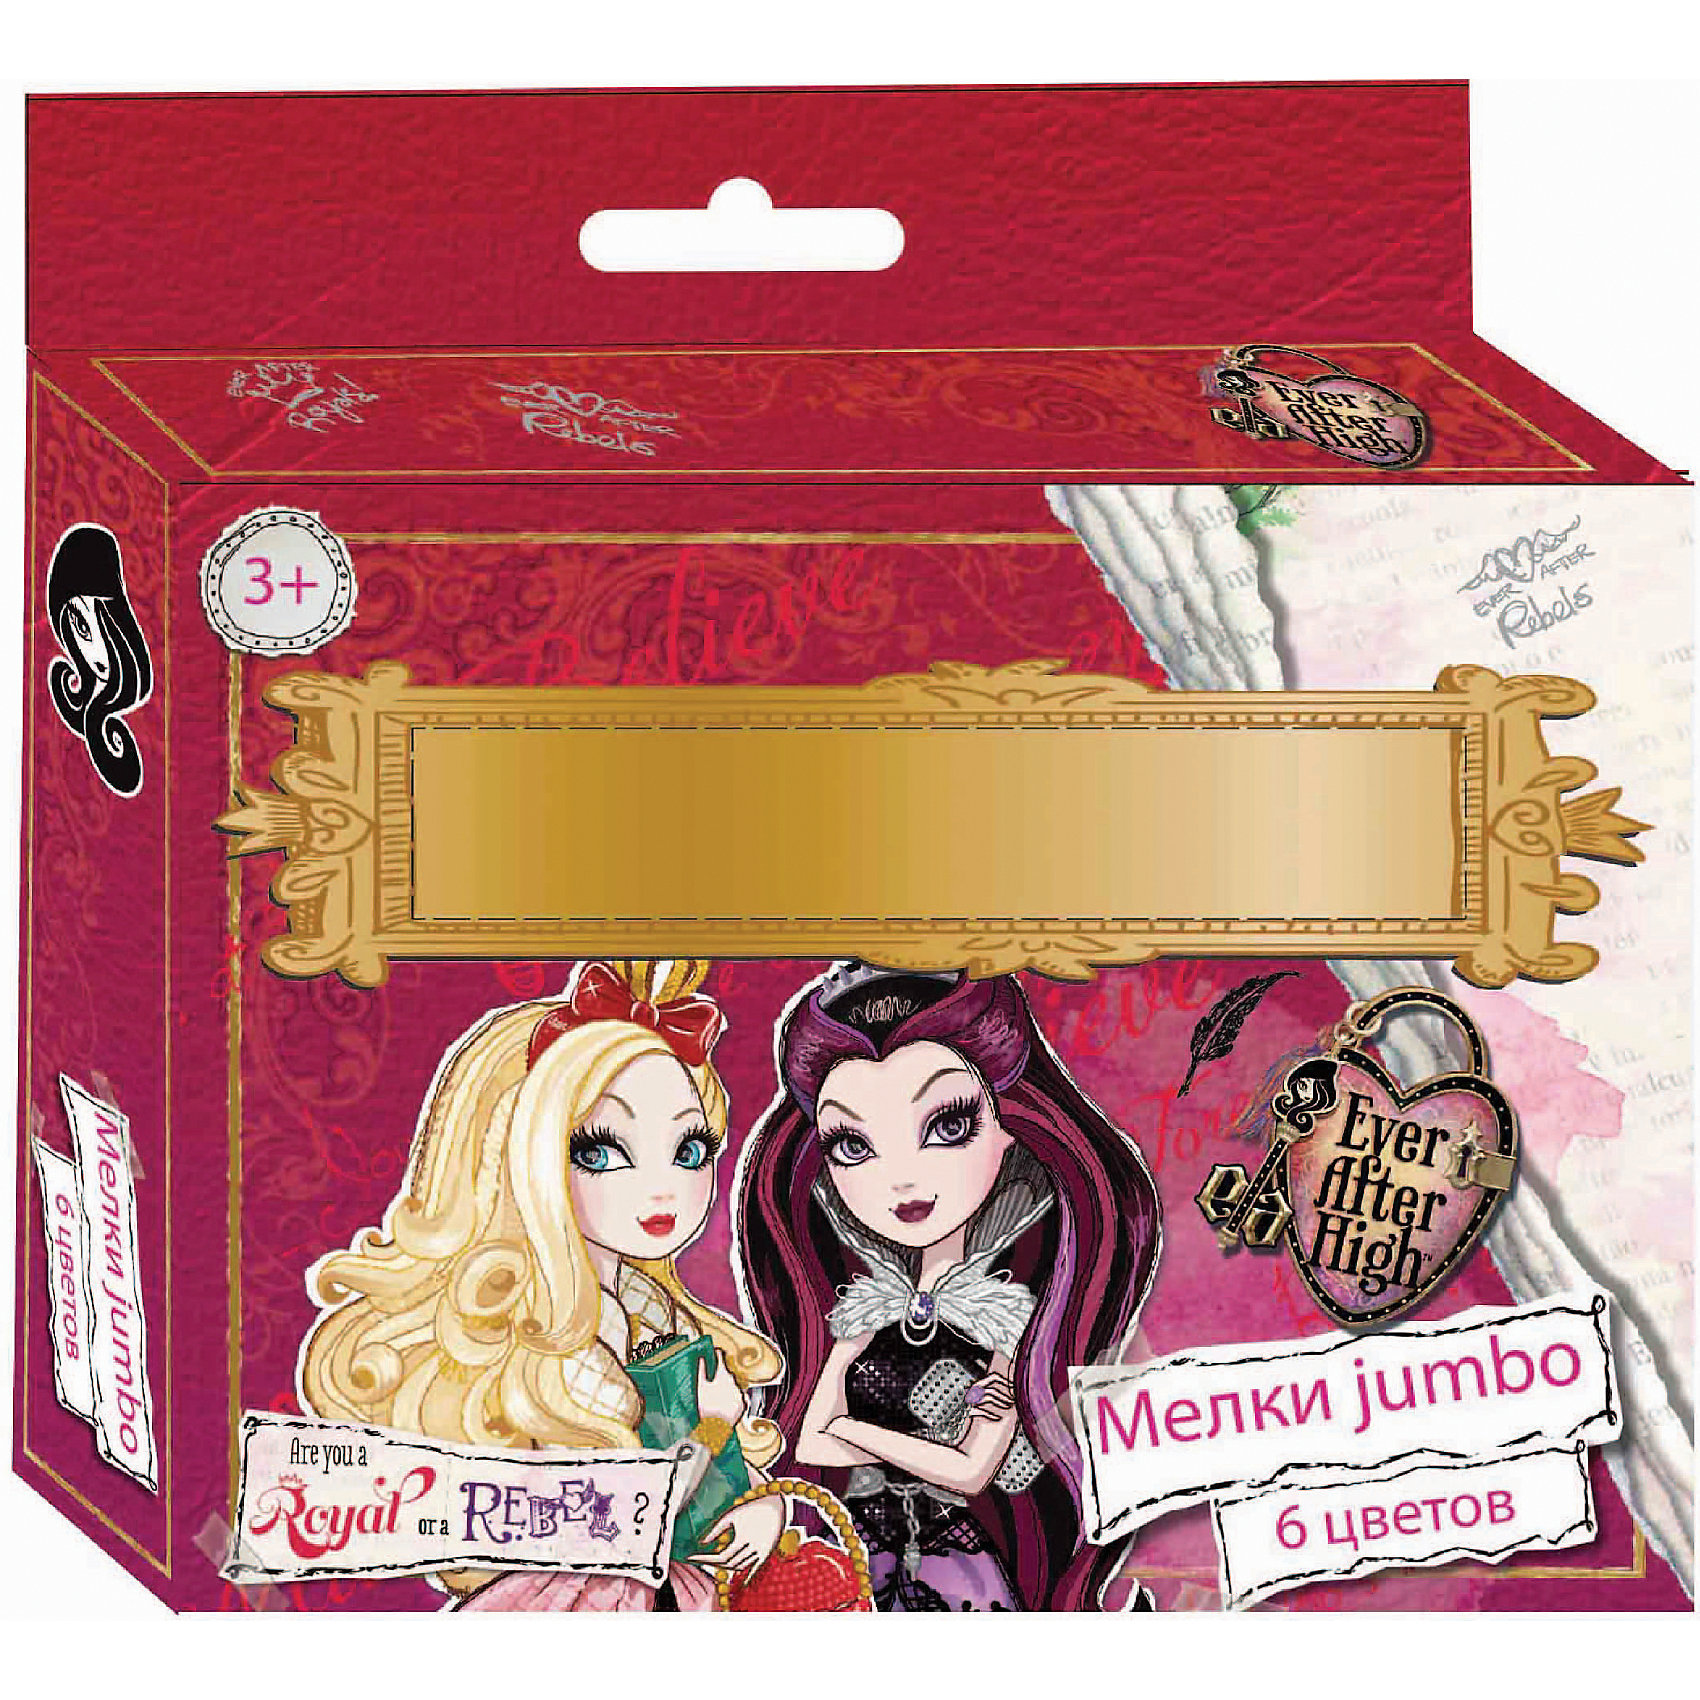 CENTRUM Цветные мелки Jumbo, Ever After High centrum картон цветной ever after high 8 цветов